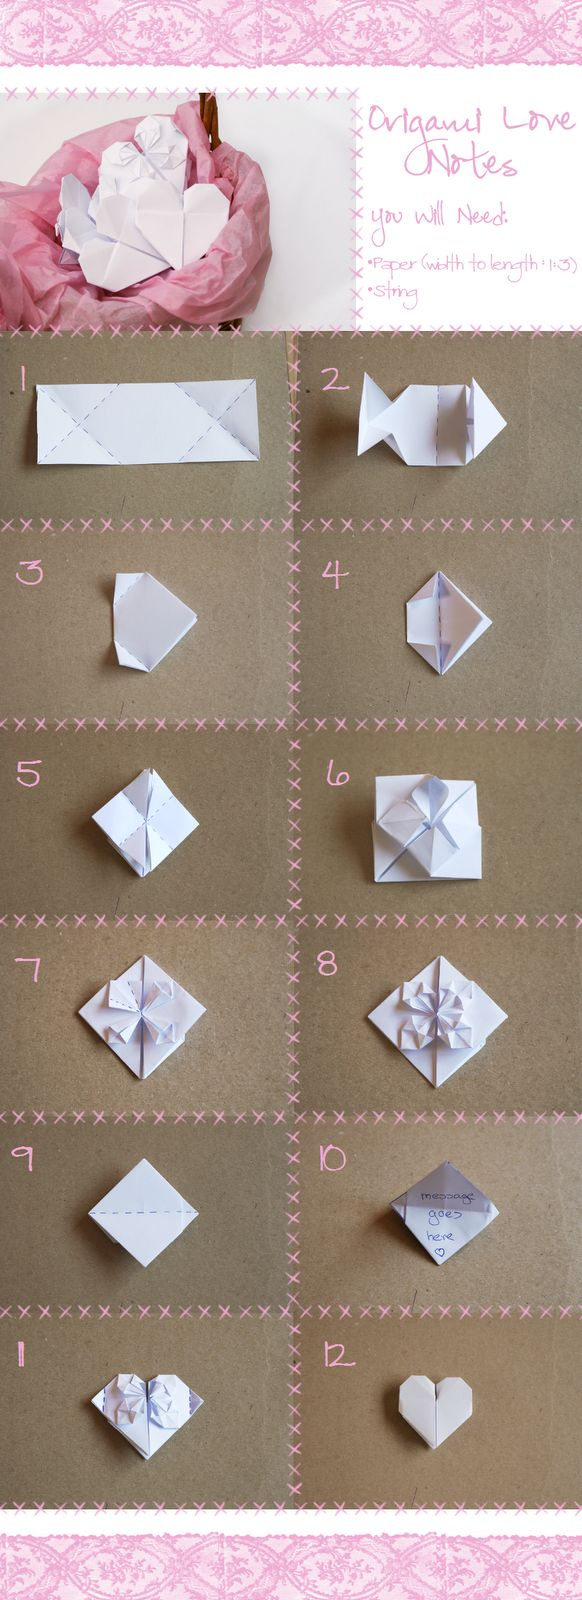 Origami Love Note Tutorial